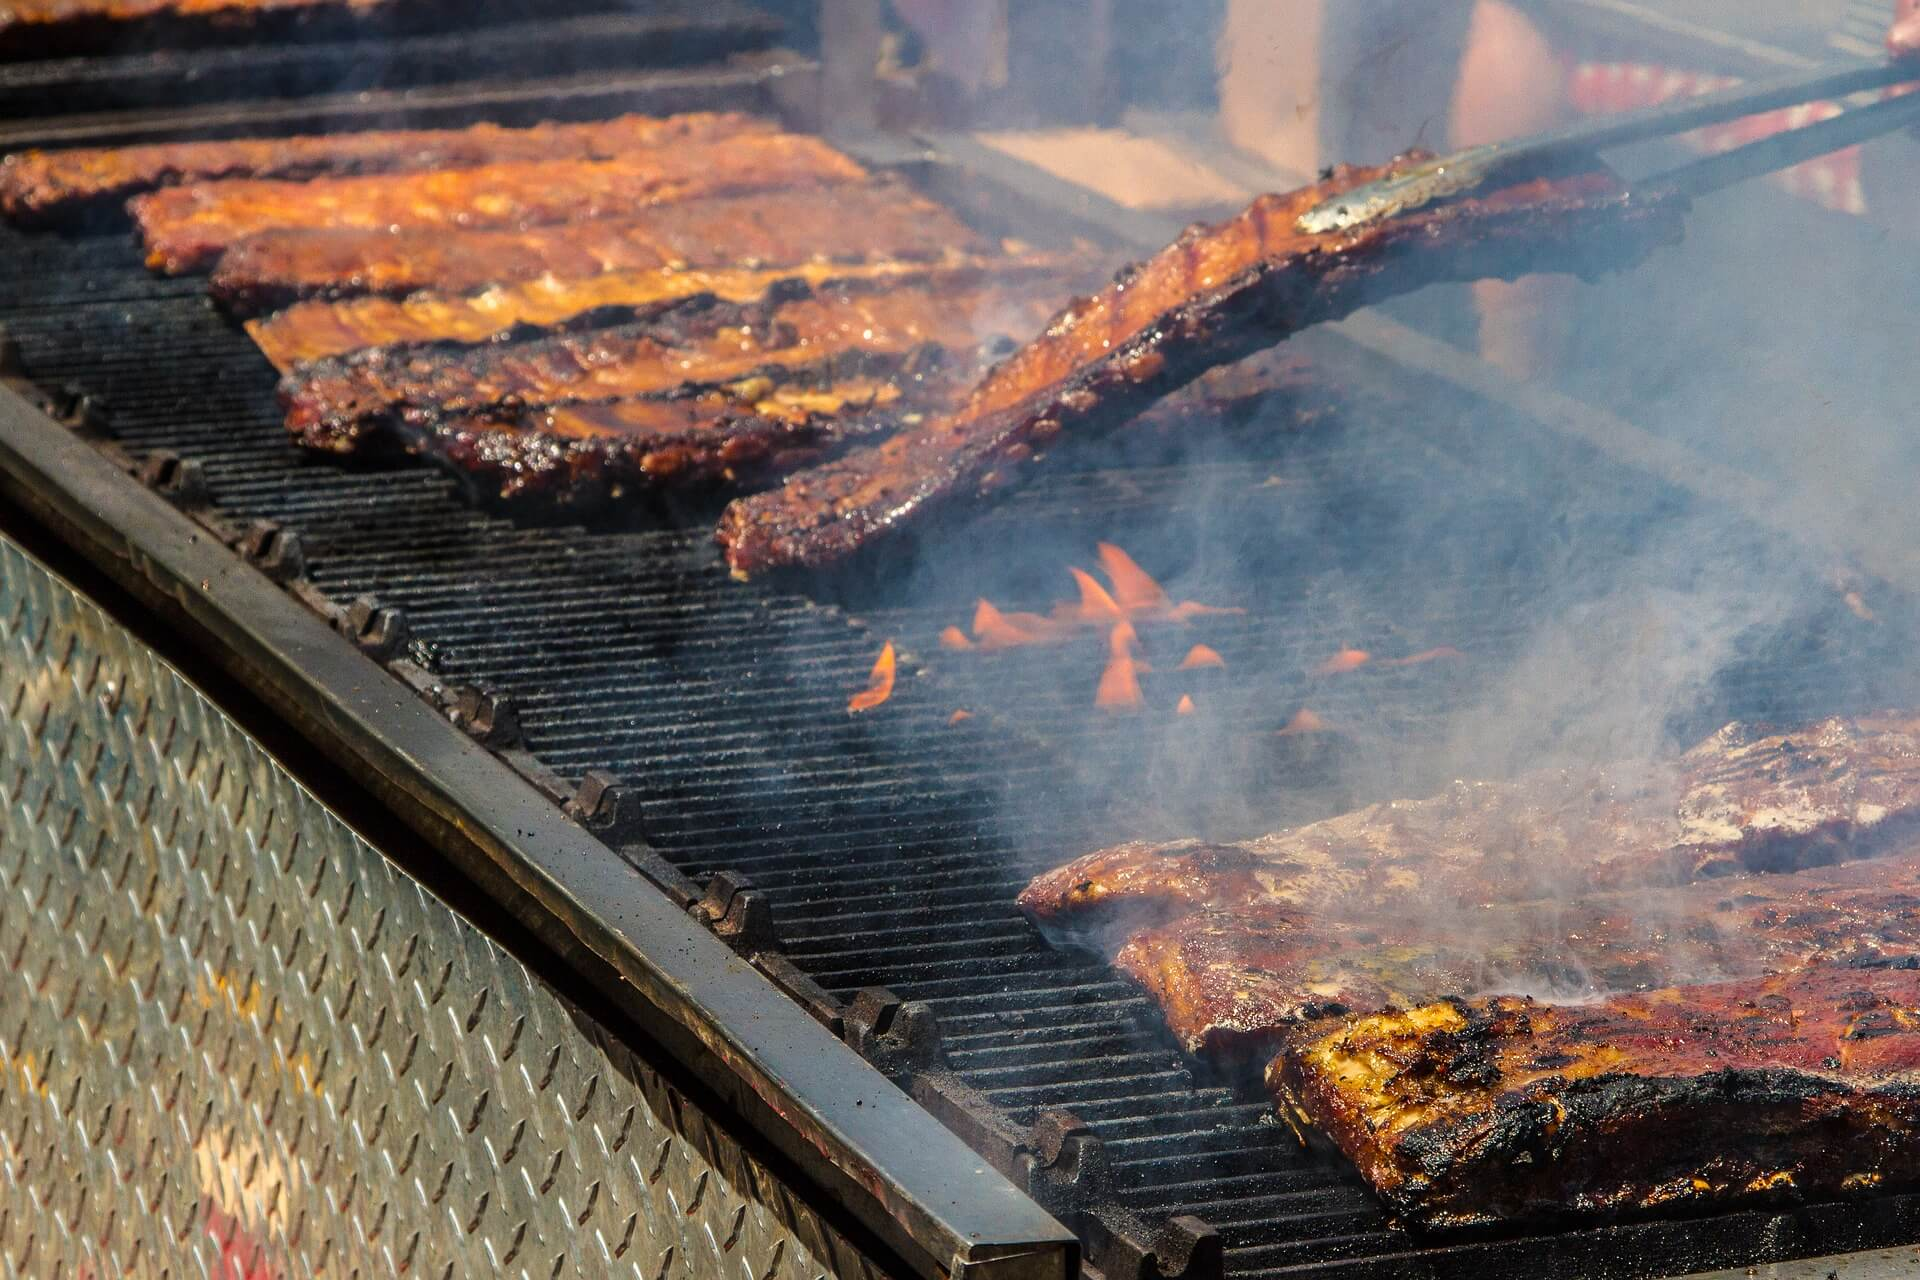 Barbecue raising funds for Living Well Project